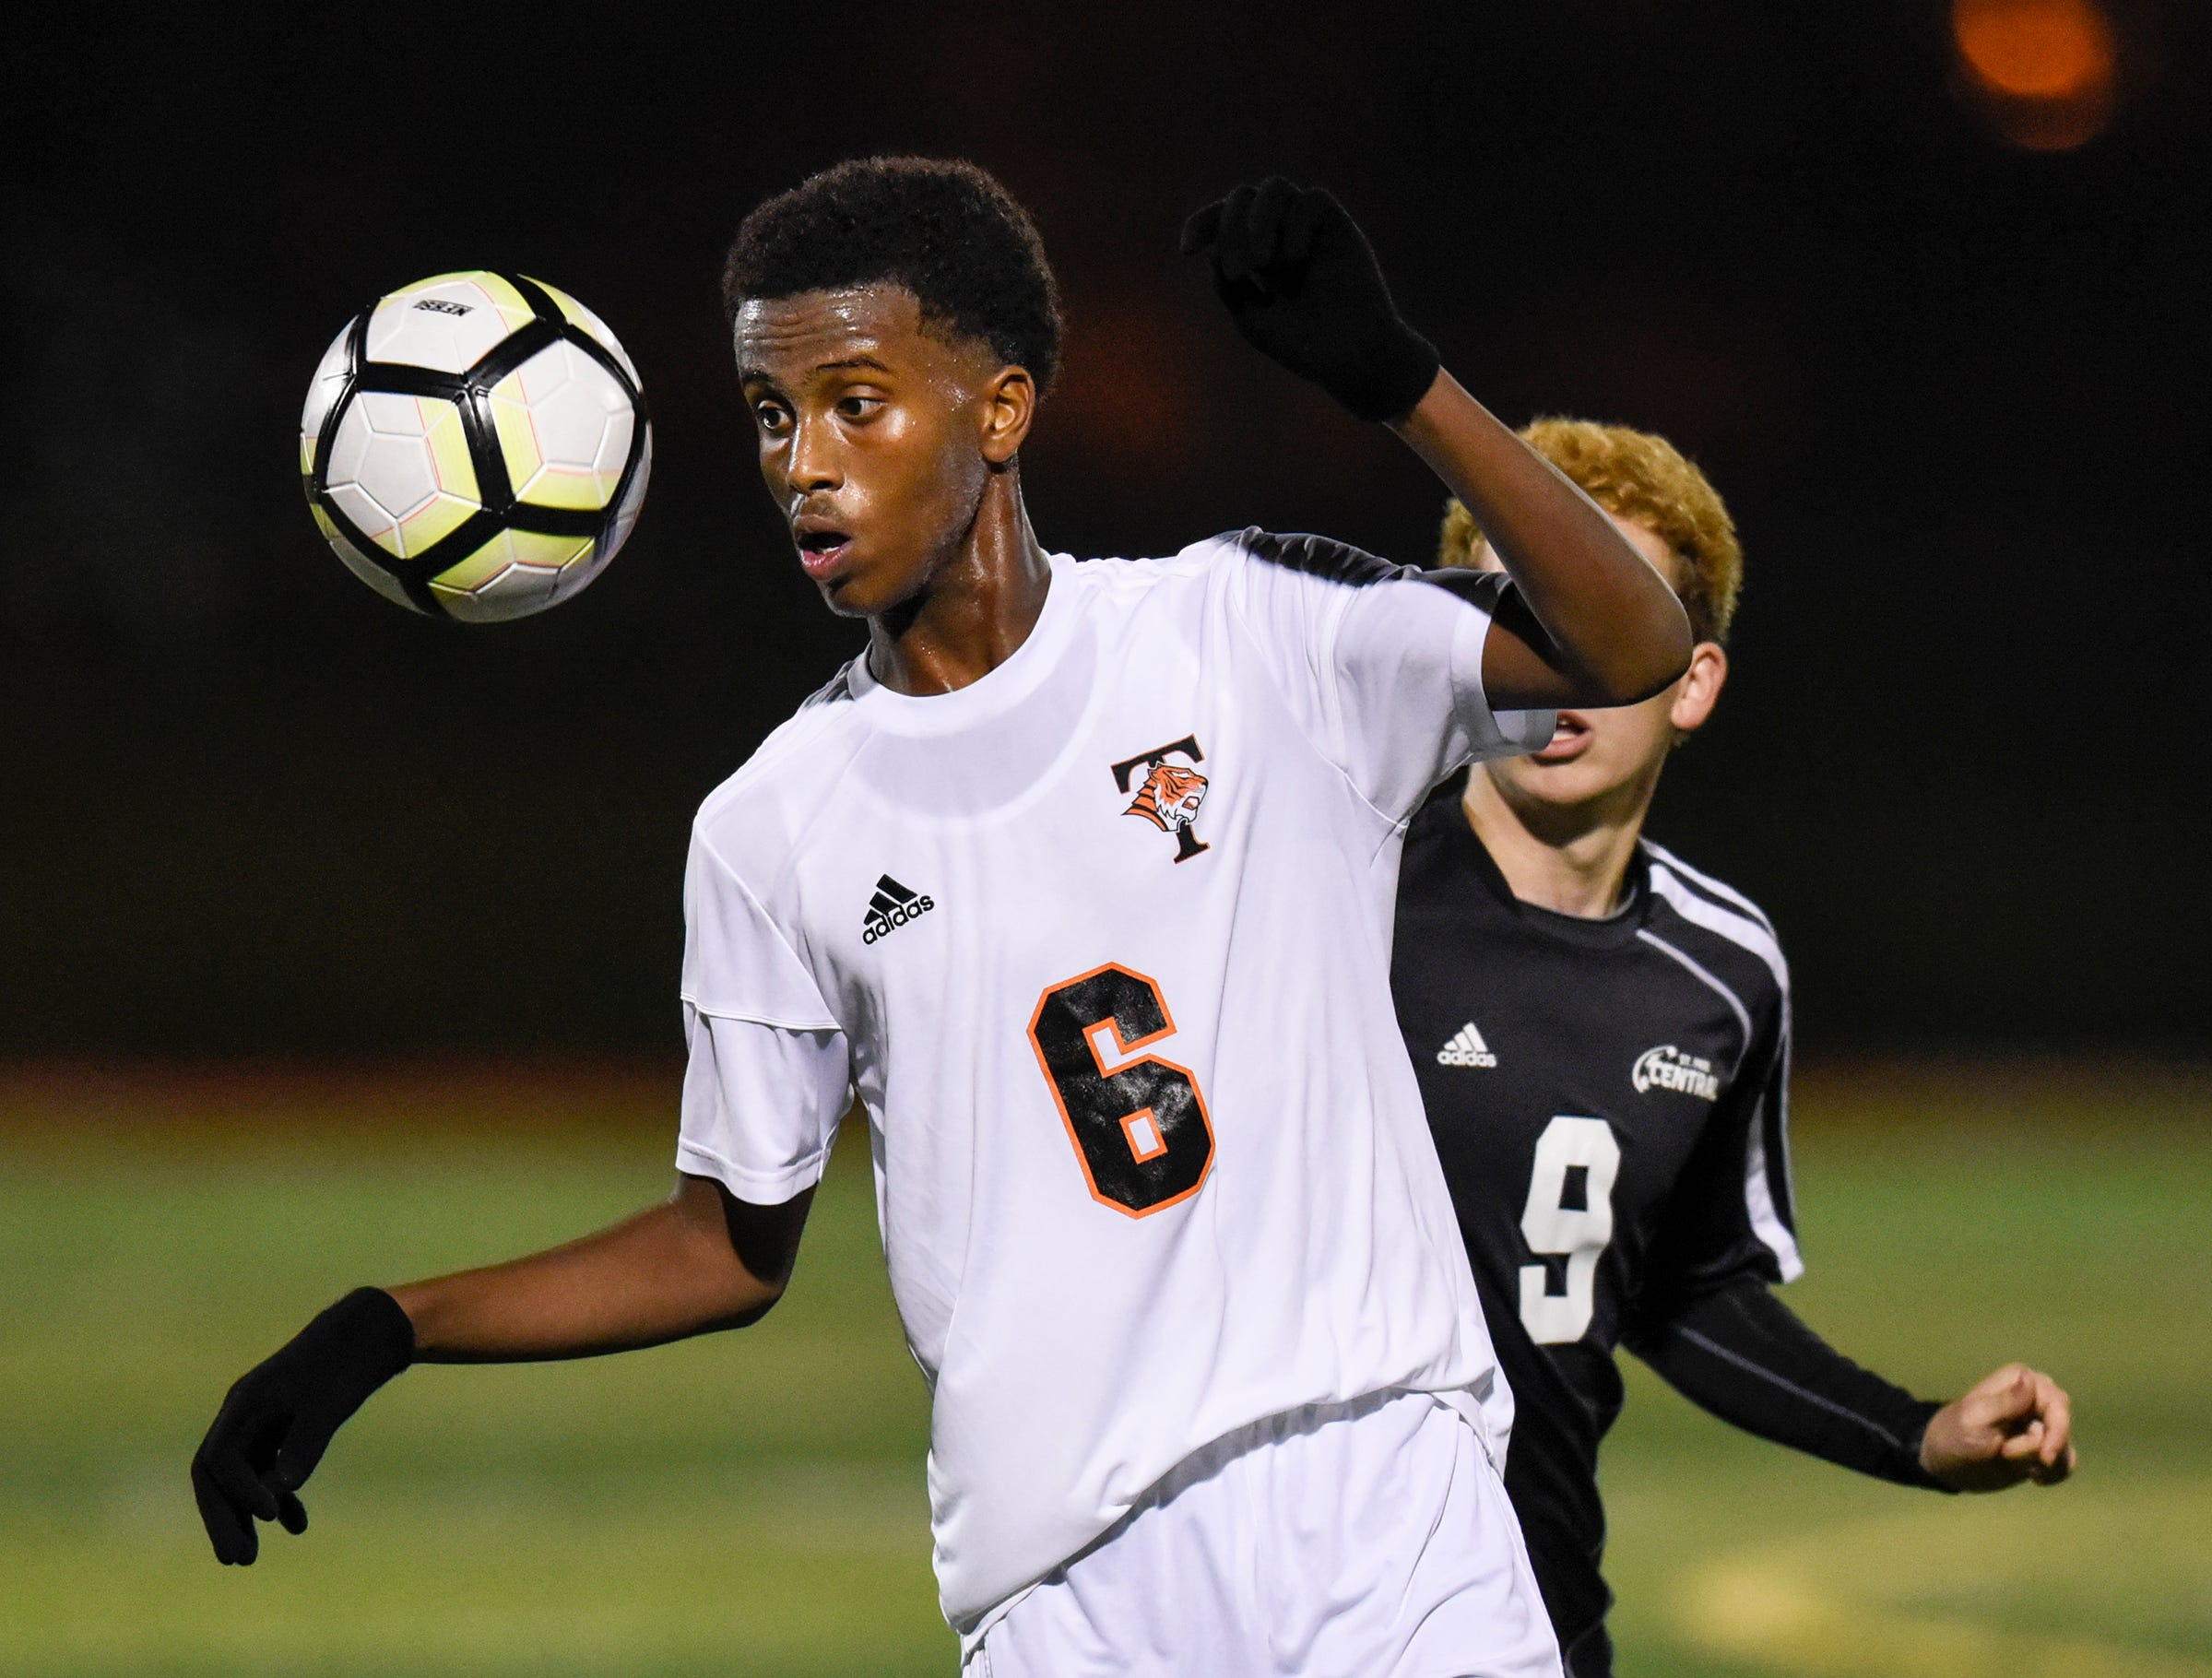 Tech's Zak Mohamud concentrates on the ball during the Thursday, Oct. 25, Class 2A state quarterfinal game at Husky Stadium in St. Cloud.